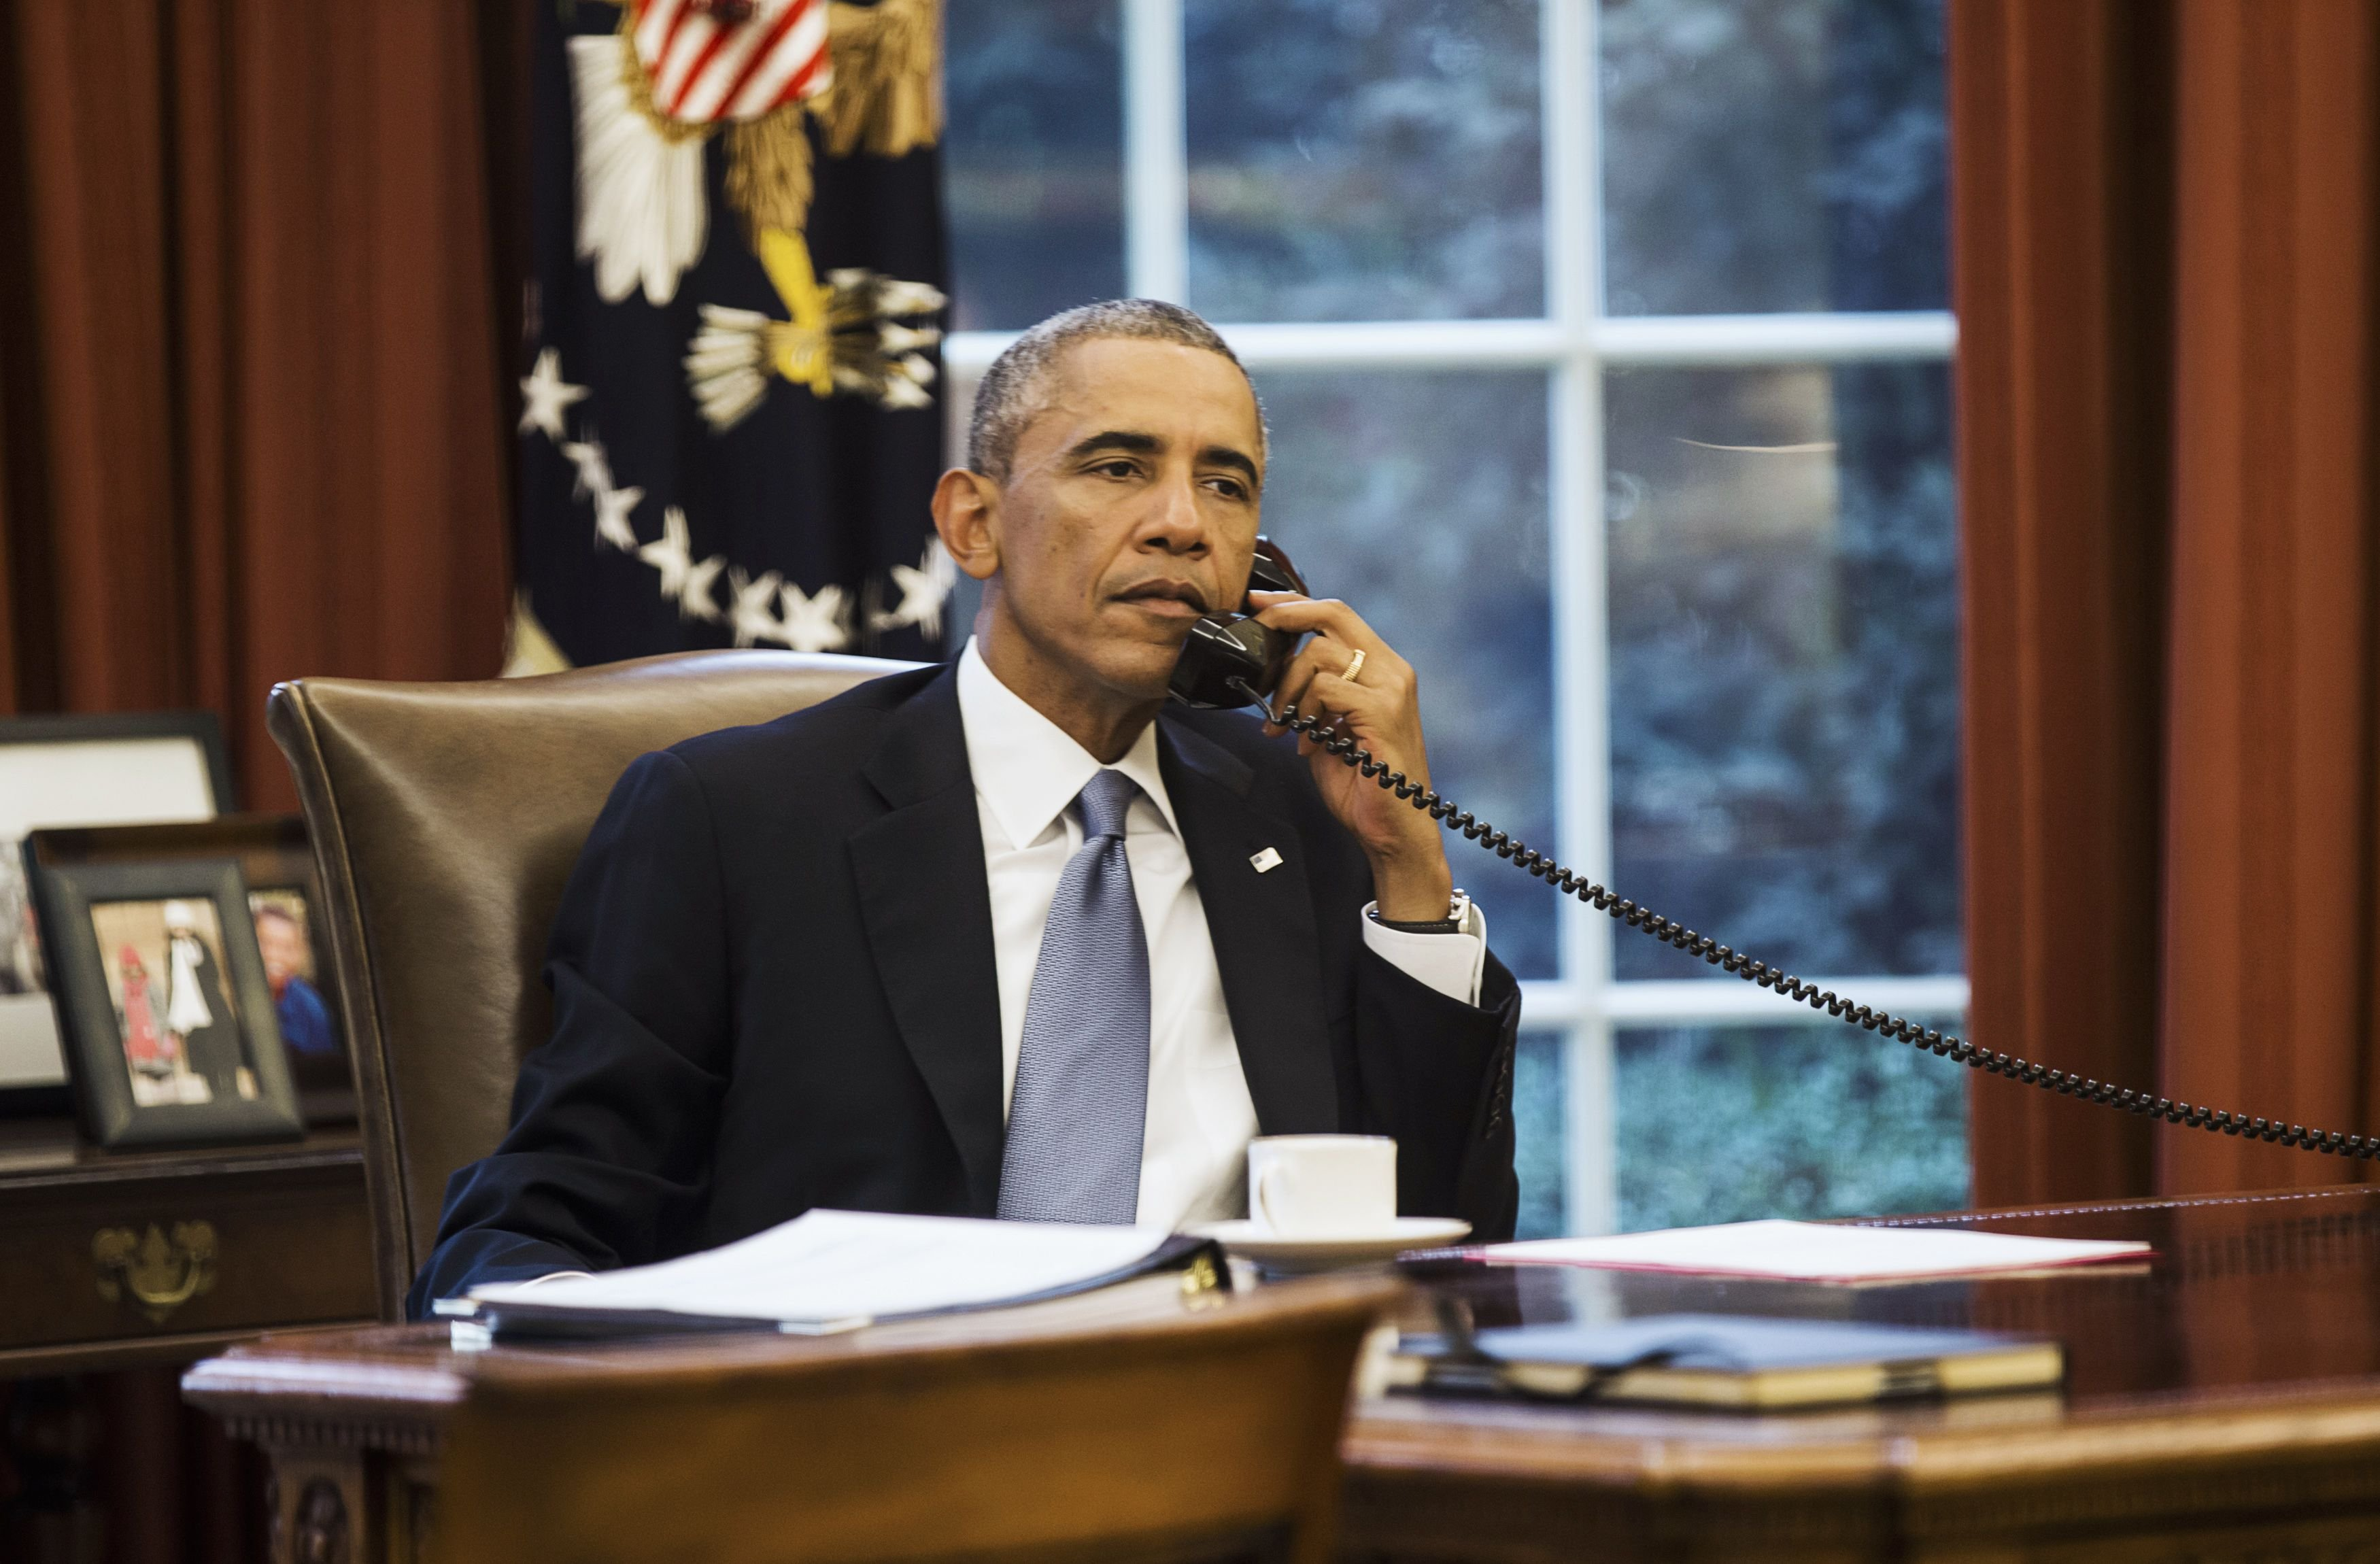 U.S. President Barack Obama speaks on the phone with Saudi Arabia's King Abdullah, before giving a speech to the nation regarding the fight against ISIS, from the Oval Office of the White House, in Washington on Sept. 10, 2014.